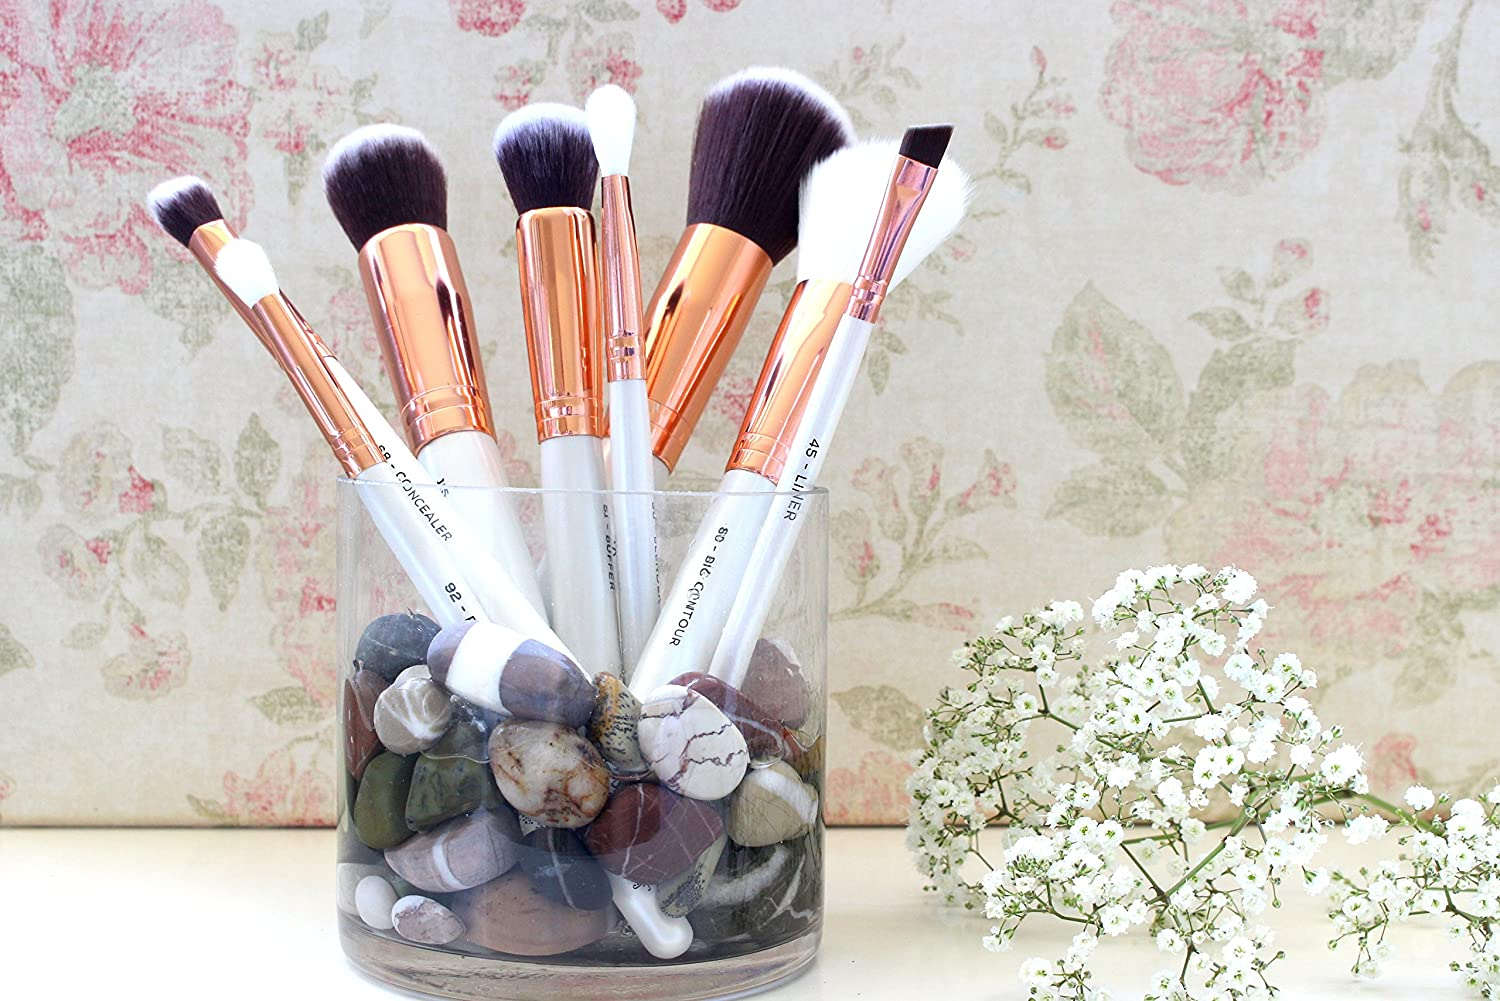 rose gold and white makeup brushes. beauty widgets professional luxury 8 piece makeup brush set with fantastic soft synthetic bristles rose gold ferrules white handles plus bag pink and brushes